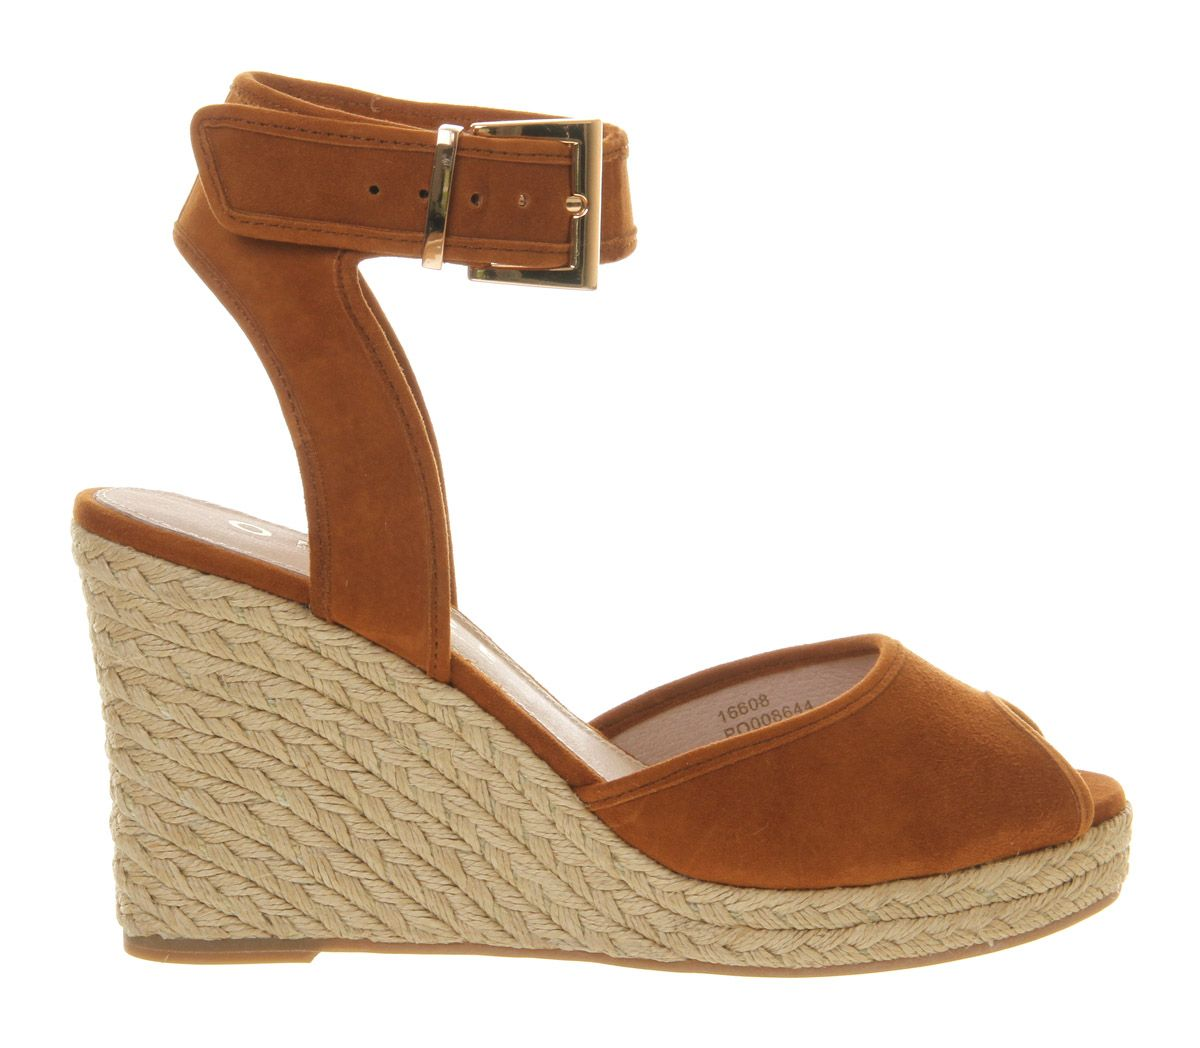 Dark horse leather peep toe wedge espadrilles